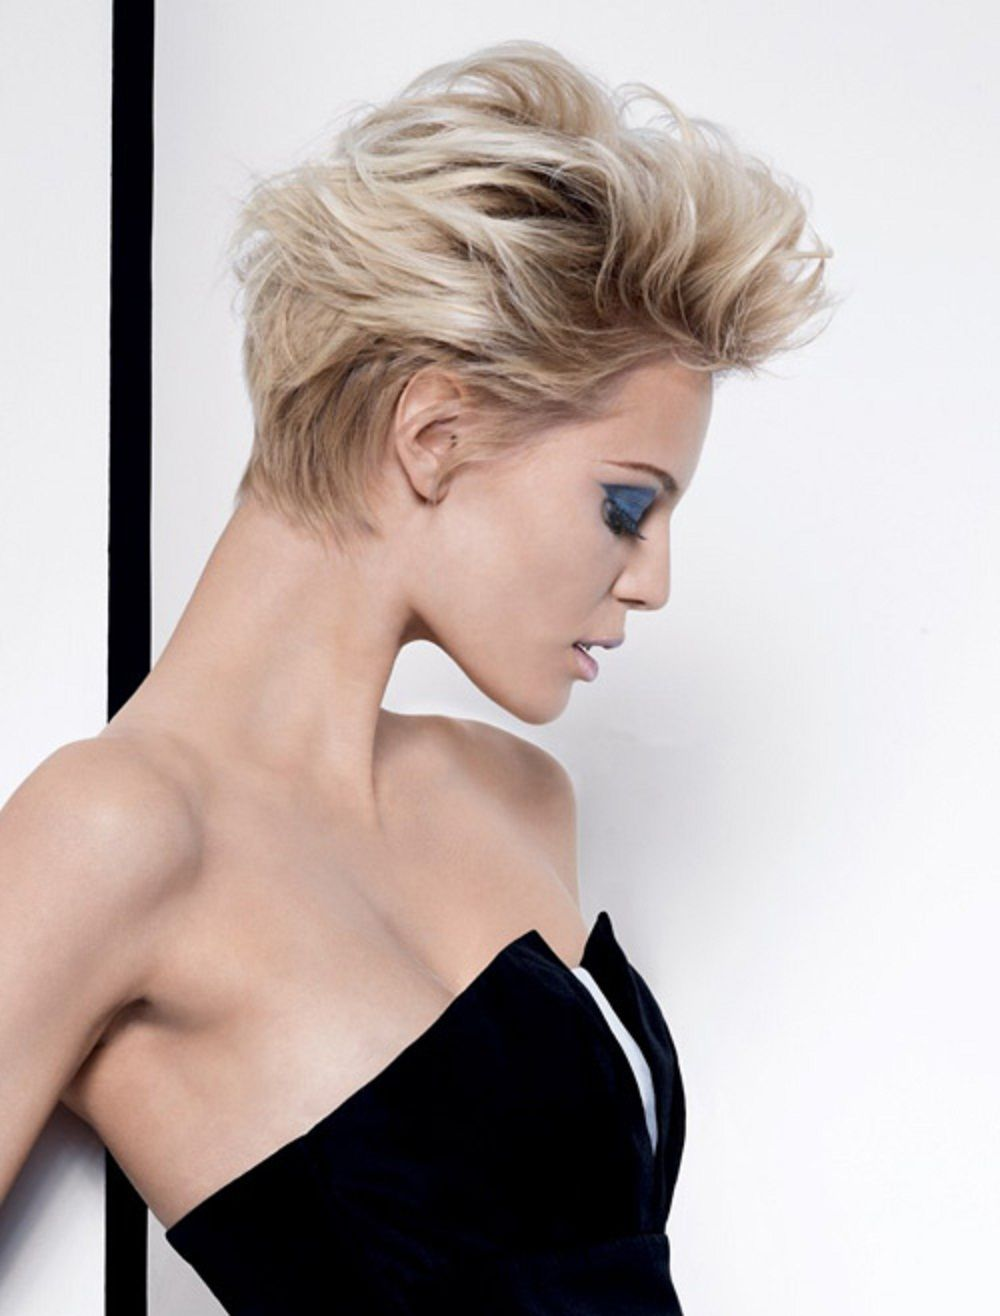 Hairstyles short curly hair short cut hairstyle